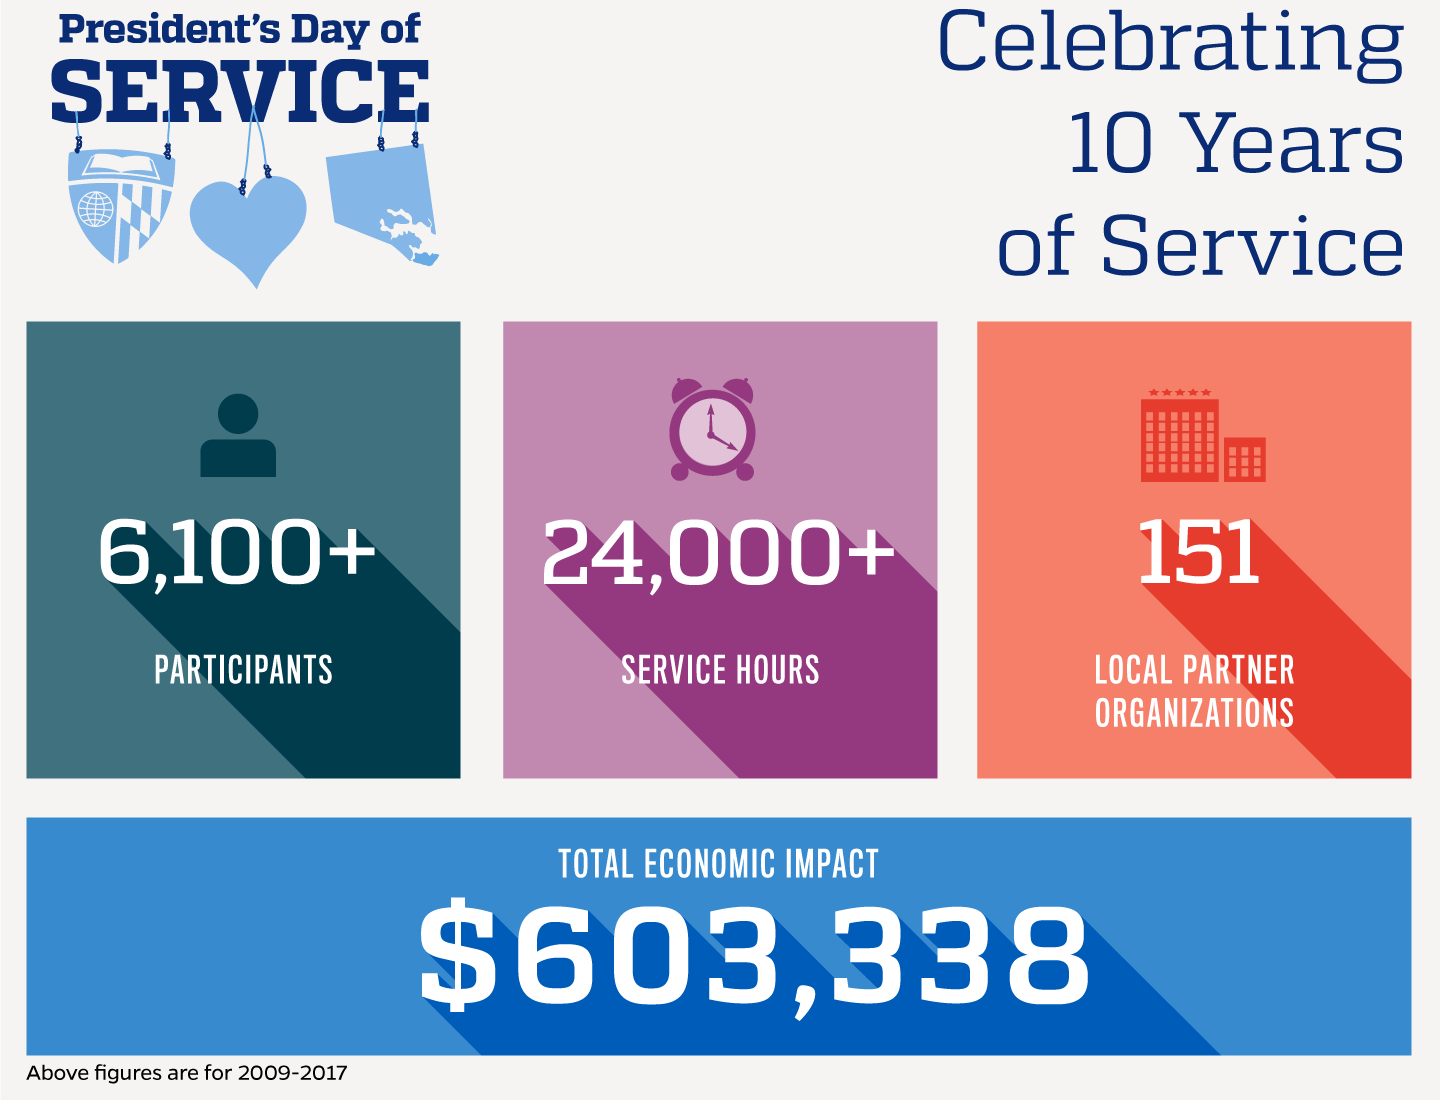 Infographic shows impact figures for the President's Day of Service